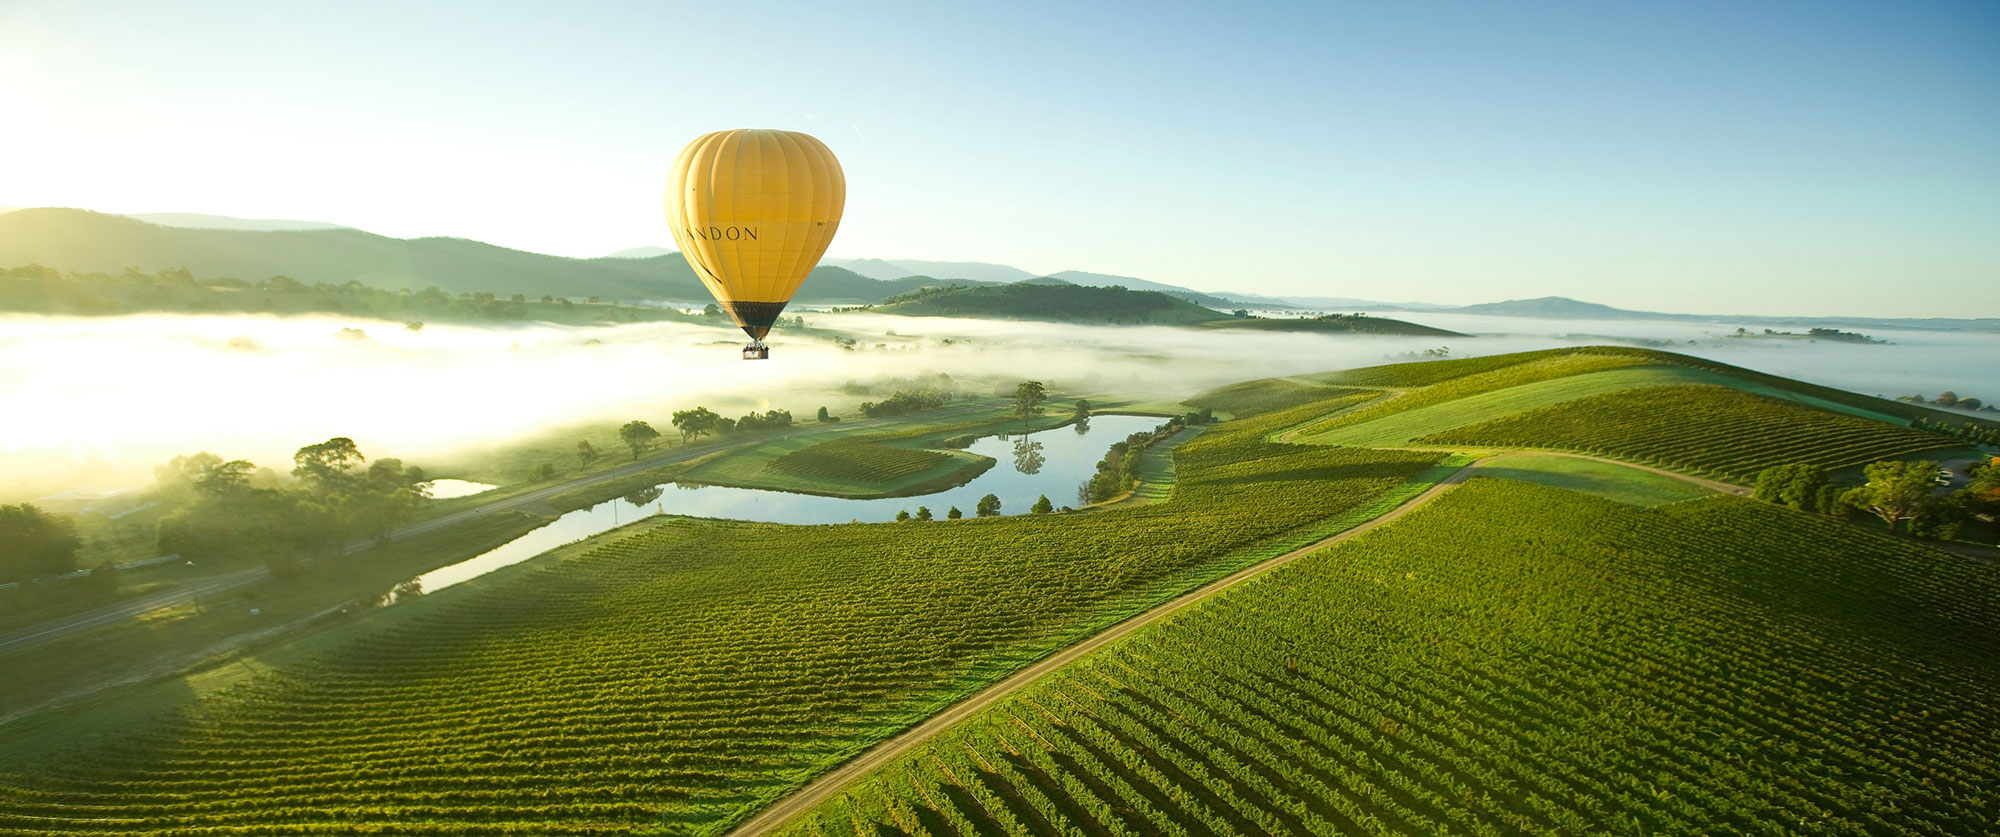 Hot air balloon over Yarra Valley, Victoria, Australia